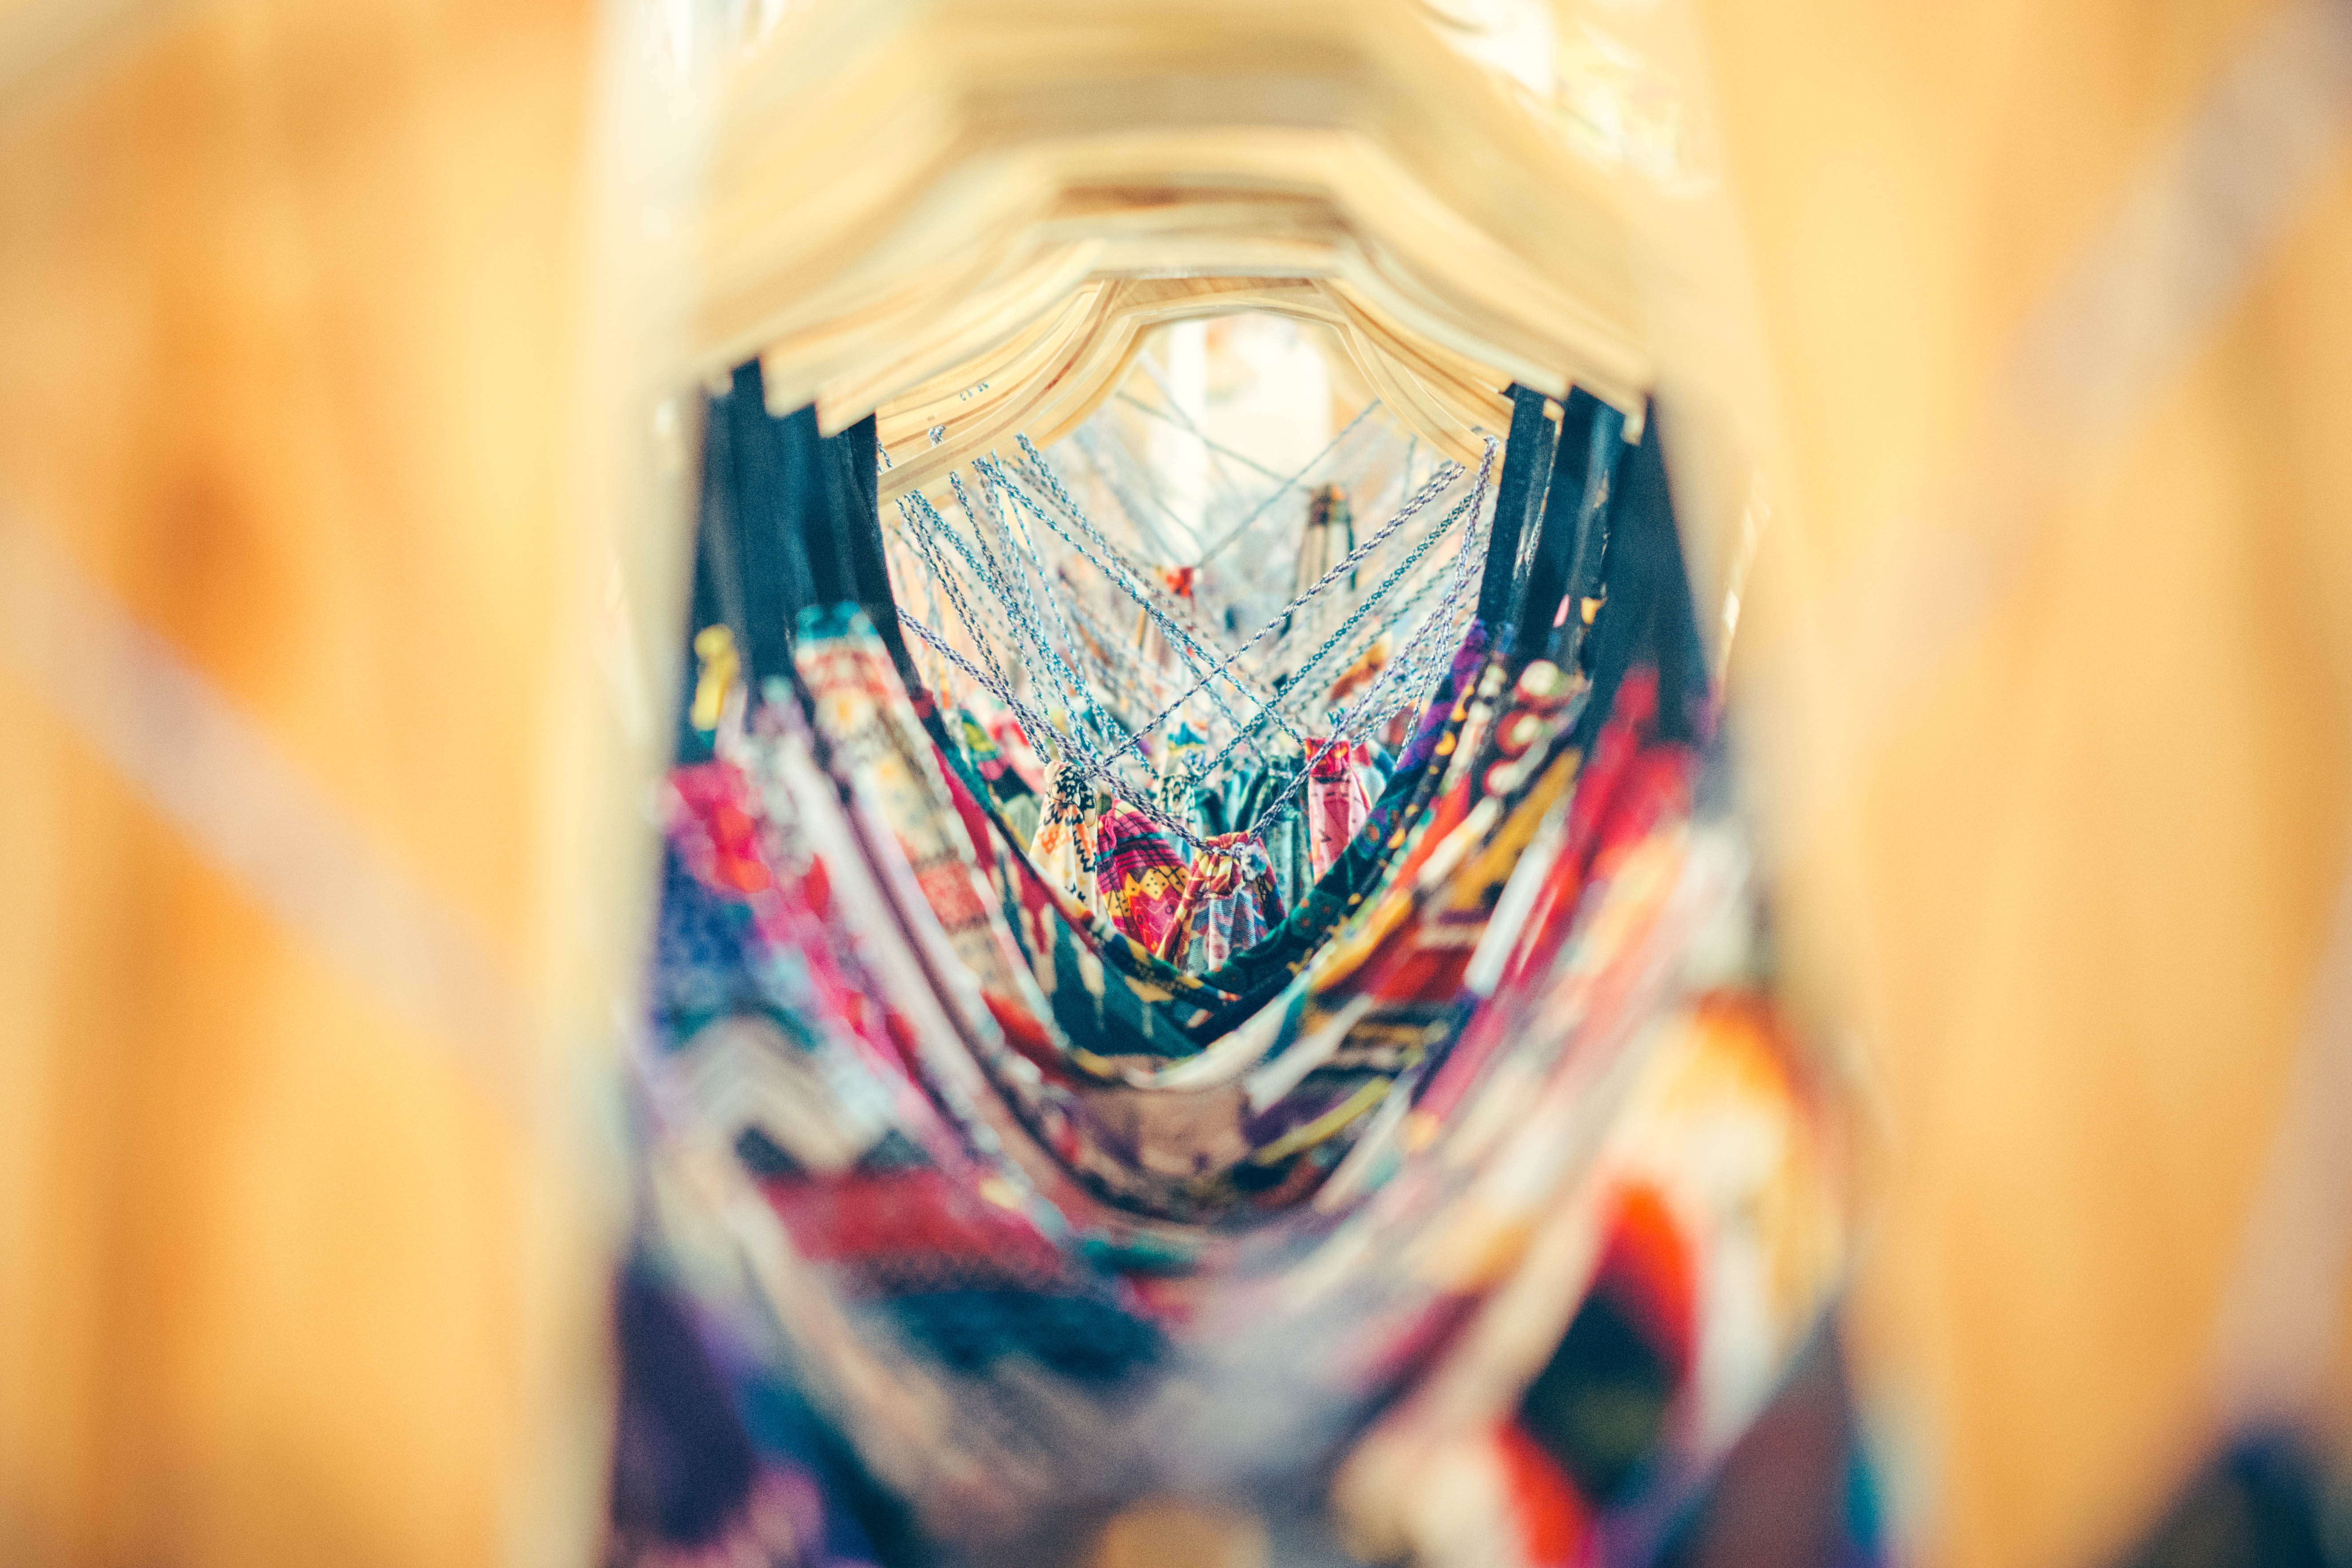 Fast fashion provides consumers with a ready flow of trendy clothes which are cheap and often of low quality. Photo Credit: Inspirationfeed/Unsplash